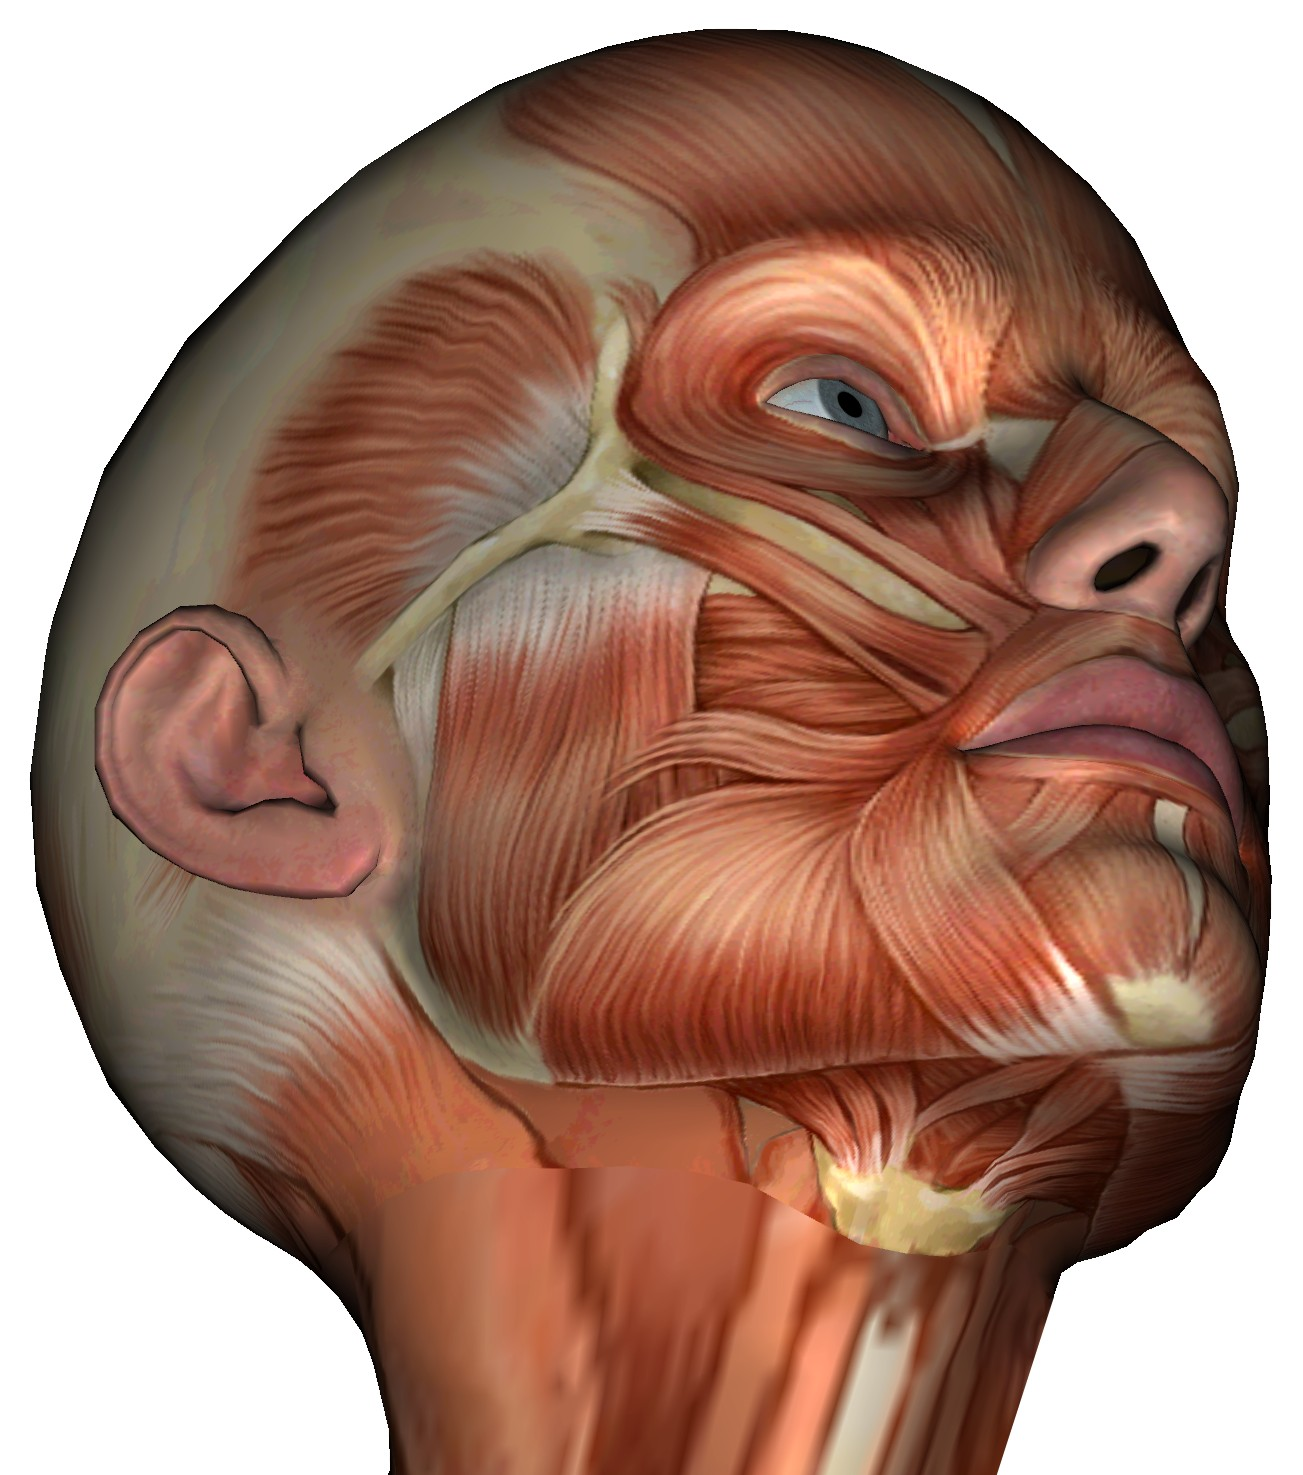 Top of head anatomy